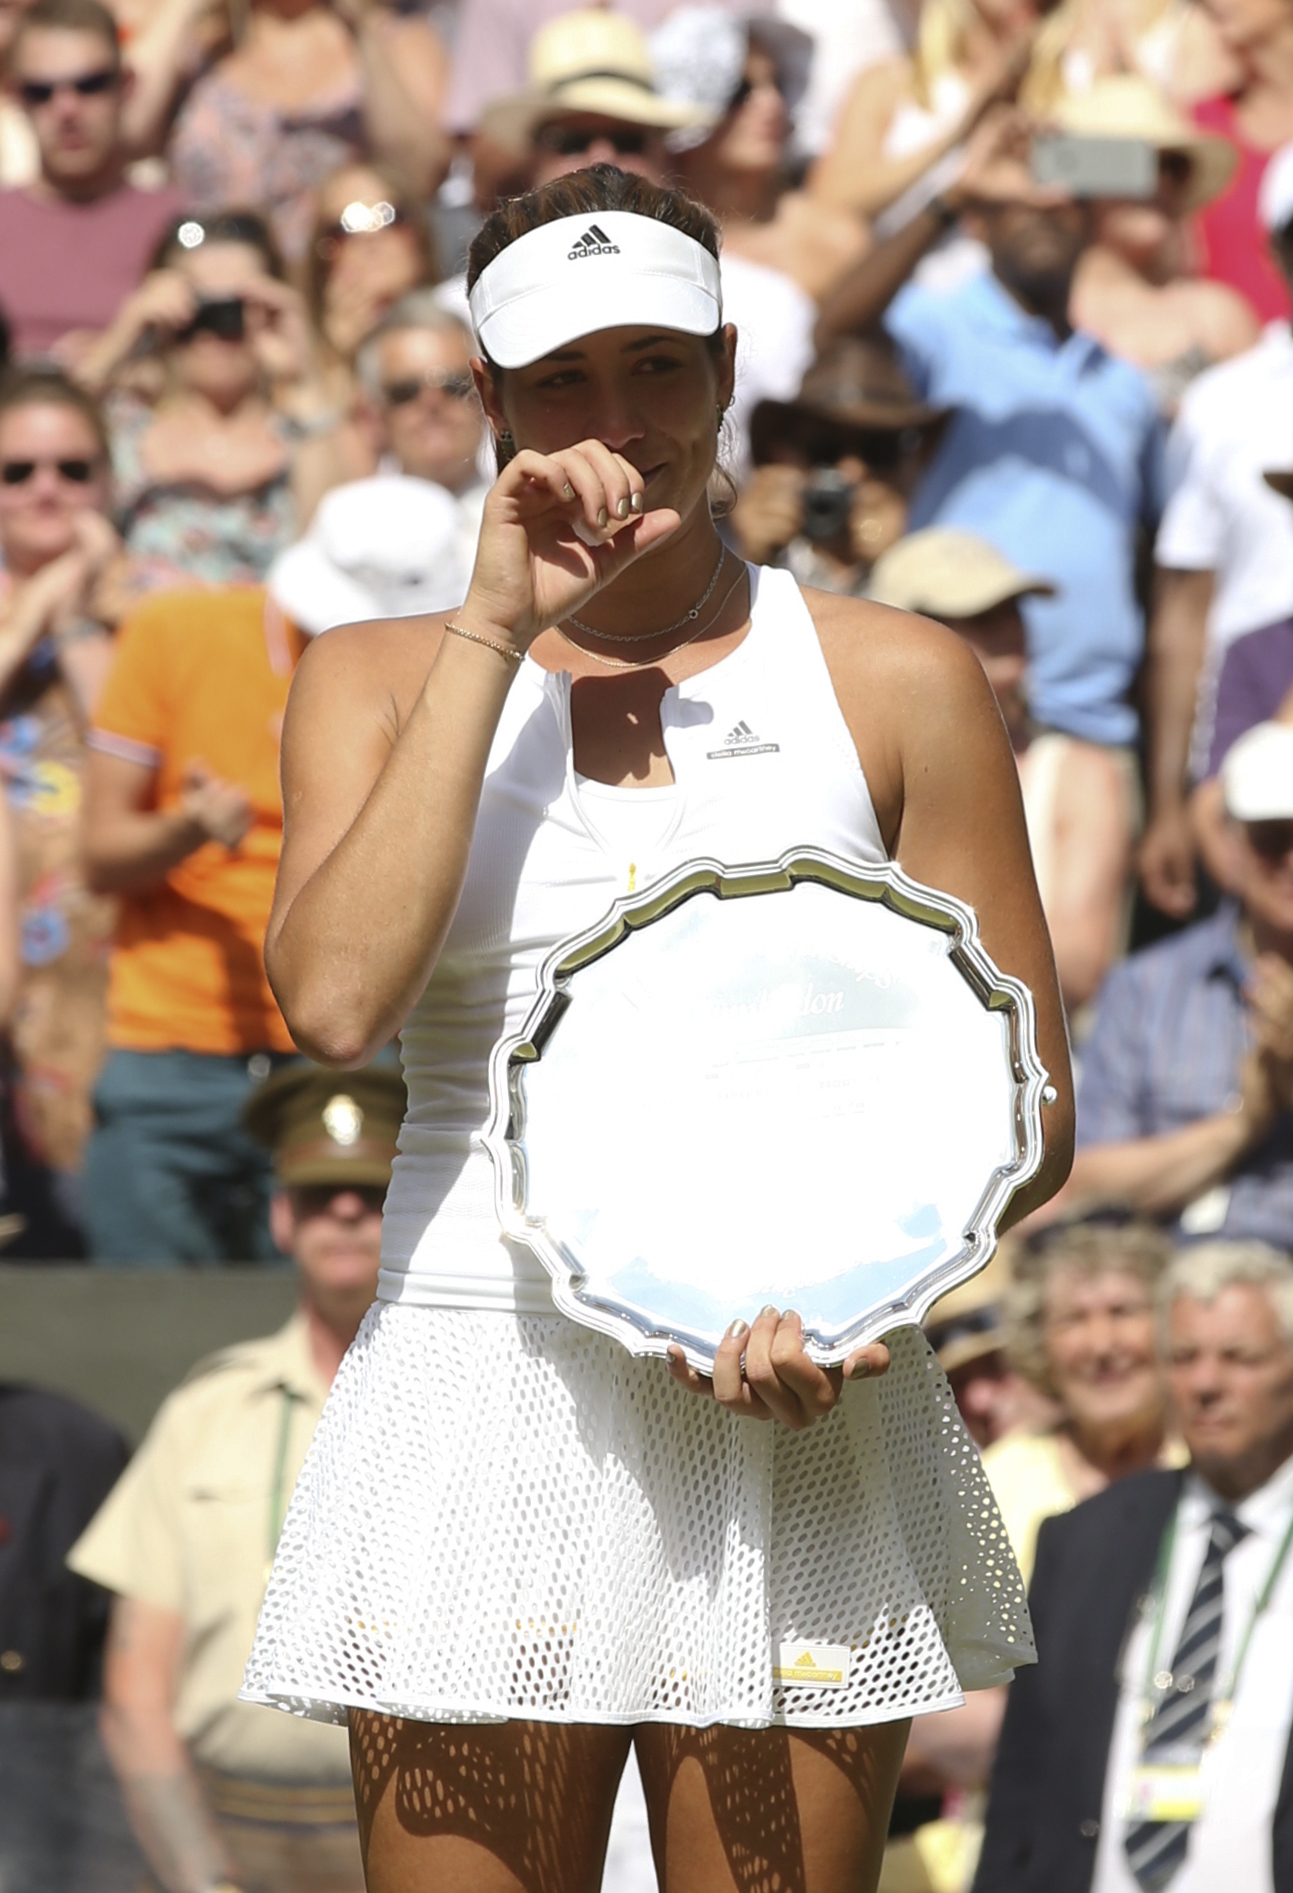 Garbine Muguruza of Spain cries as she holds the runners up trophy during the trophy ceremony after losing to Serena Williams of the United States, at the All England Lawn Tennis Championships in Wimbledon, London, Saturday July 11, 2015. (Sean Dempsey/Po